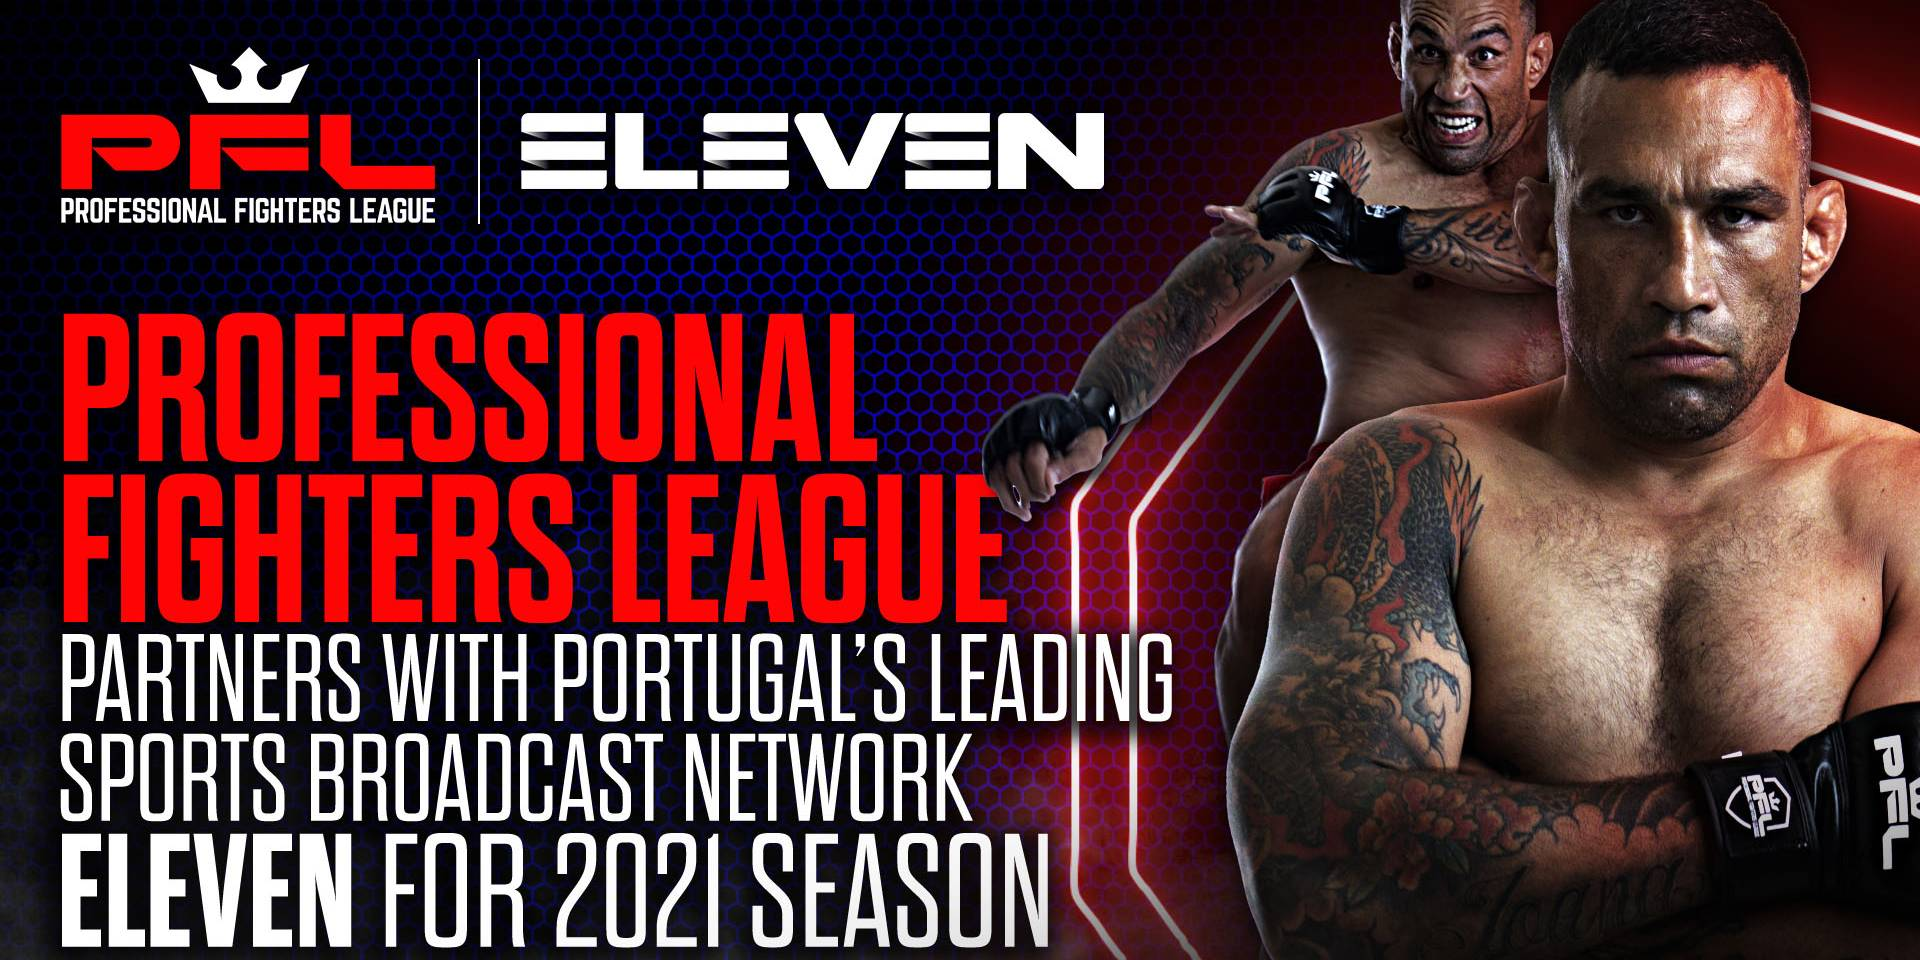 PROFESSIONAL FIGHTERS LEAGUE PARTNERS WITH PORTUGAL'S LEADING SPORTS BROADCAST NETWORK ELEVEN FOR 2021 SEASON